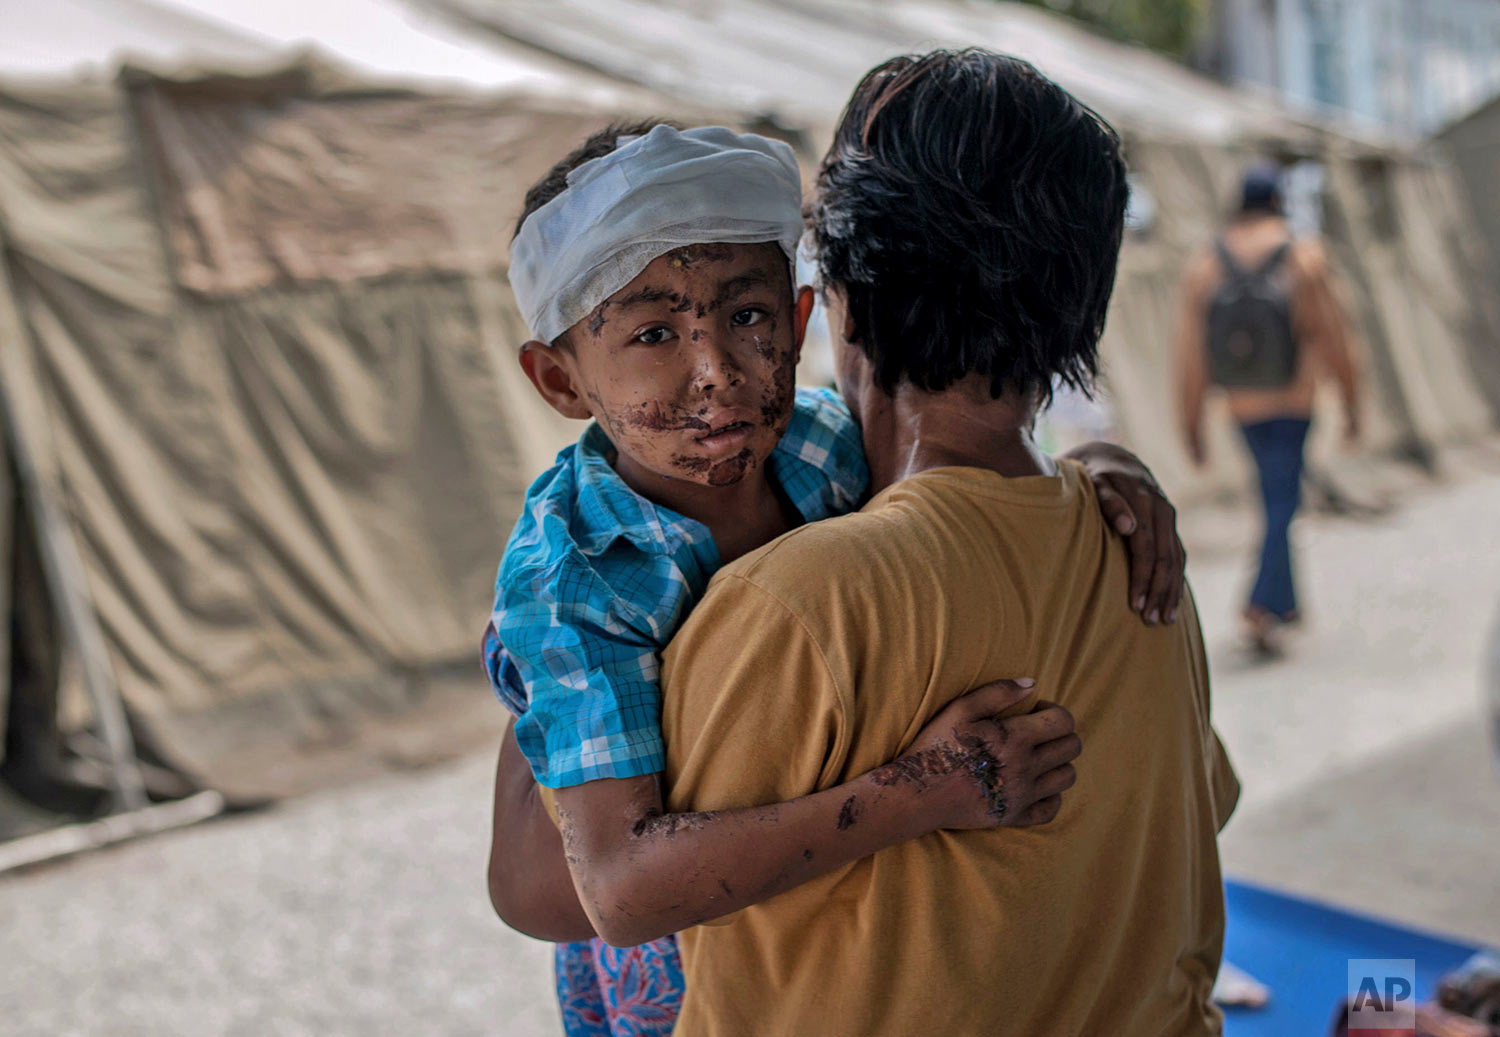 A boy injured during the tsunami is carries by his relative at a makeshift hospital in Palu, Central Sulawesi, Indonesia, Oct. 4, 2018. (AP Photo/Fauzy Chaniago)